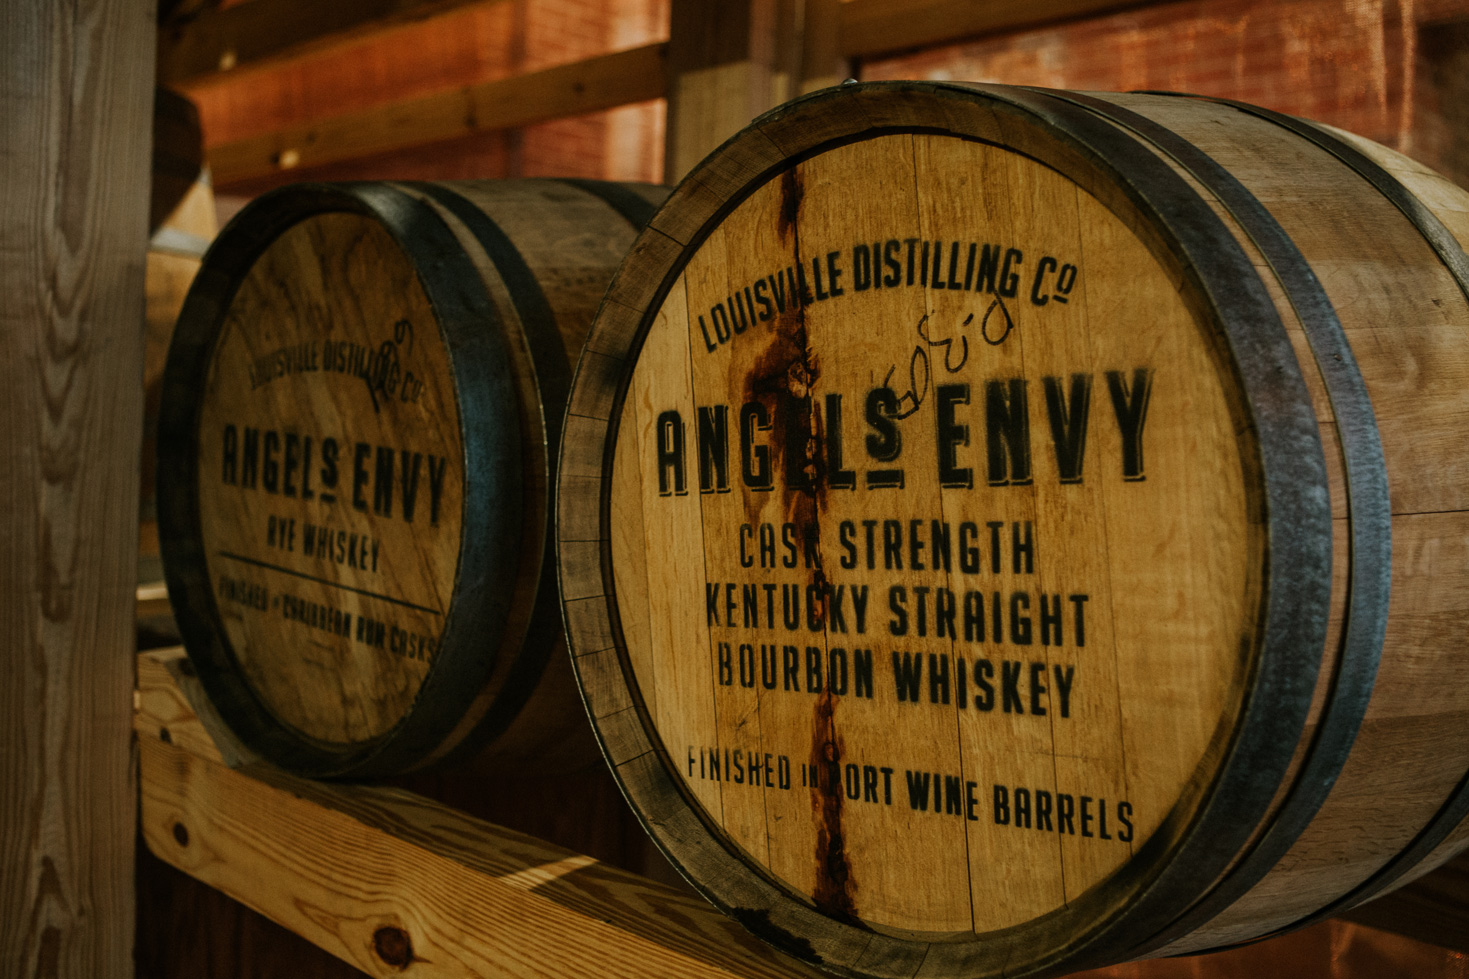 CindyGiovagnoli_Kentucky_distillery_craft_whisky_whiskey_bourbon_Jim_Beam_Angels_Envy_roadtrip_Louisville_Ky-021.jpg